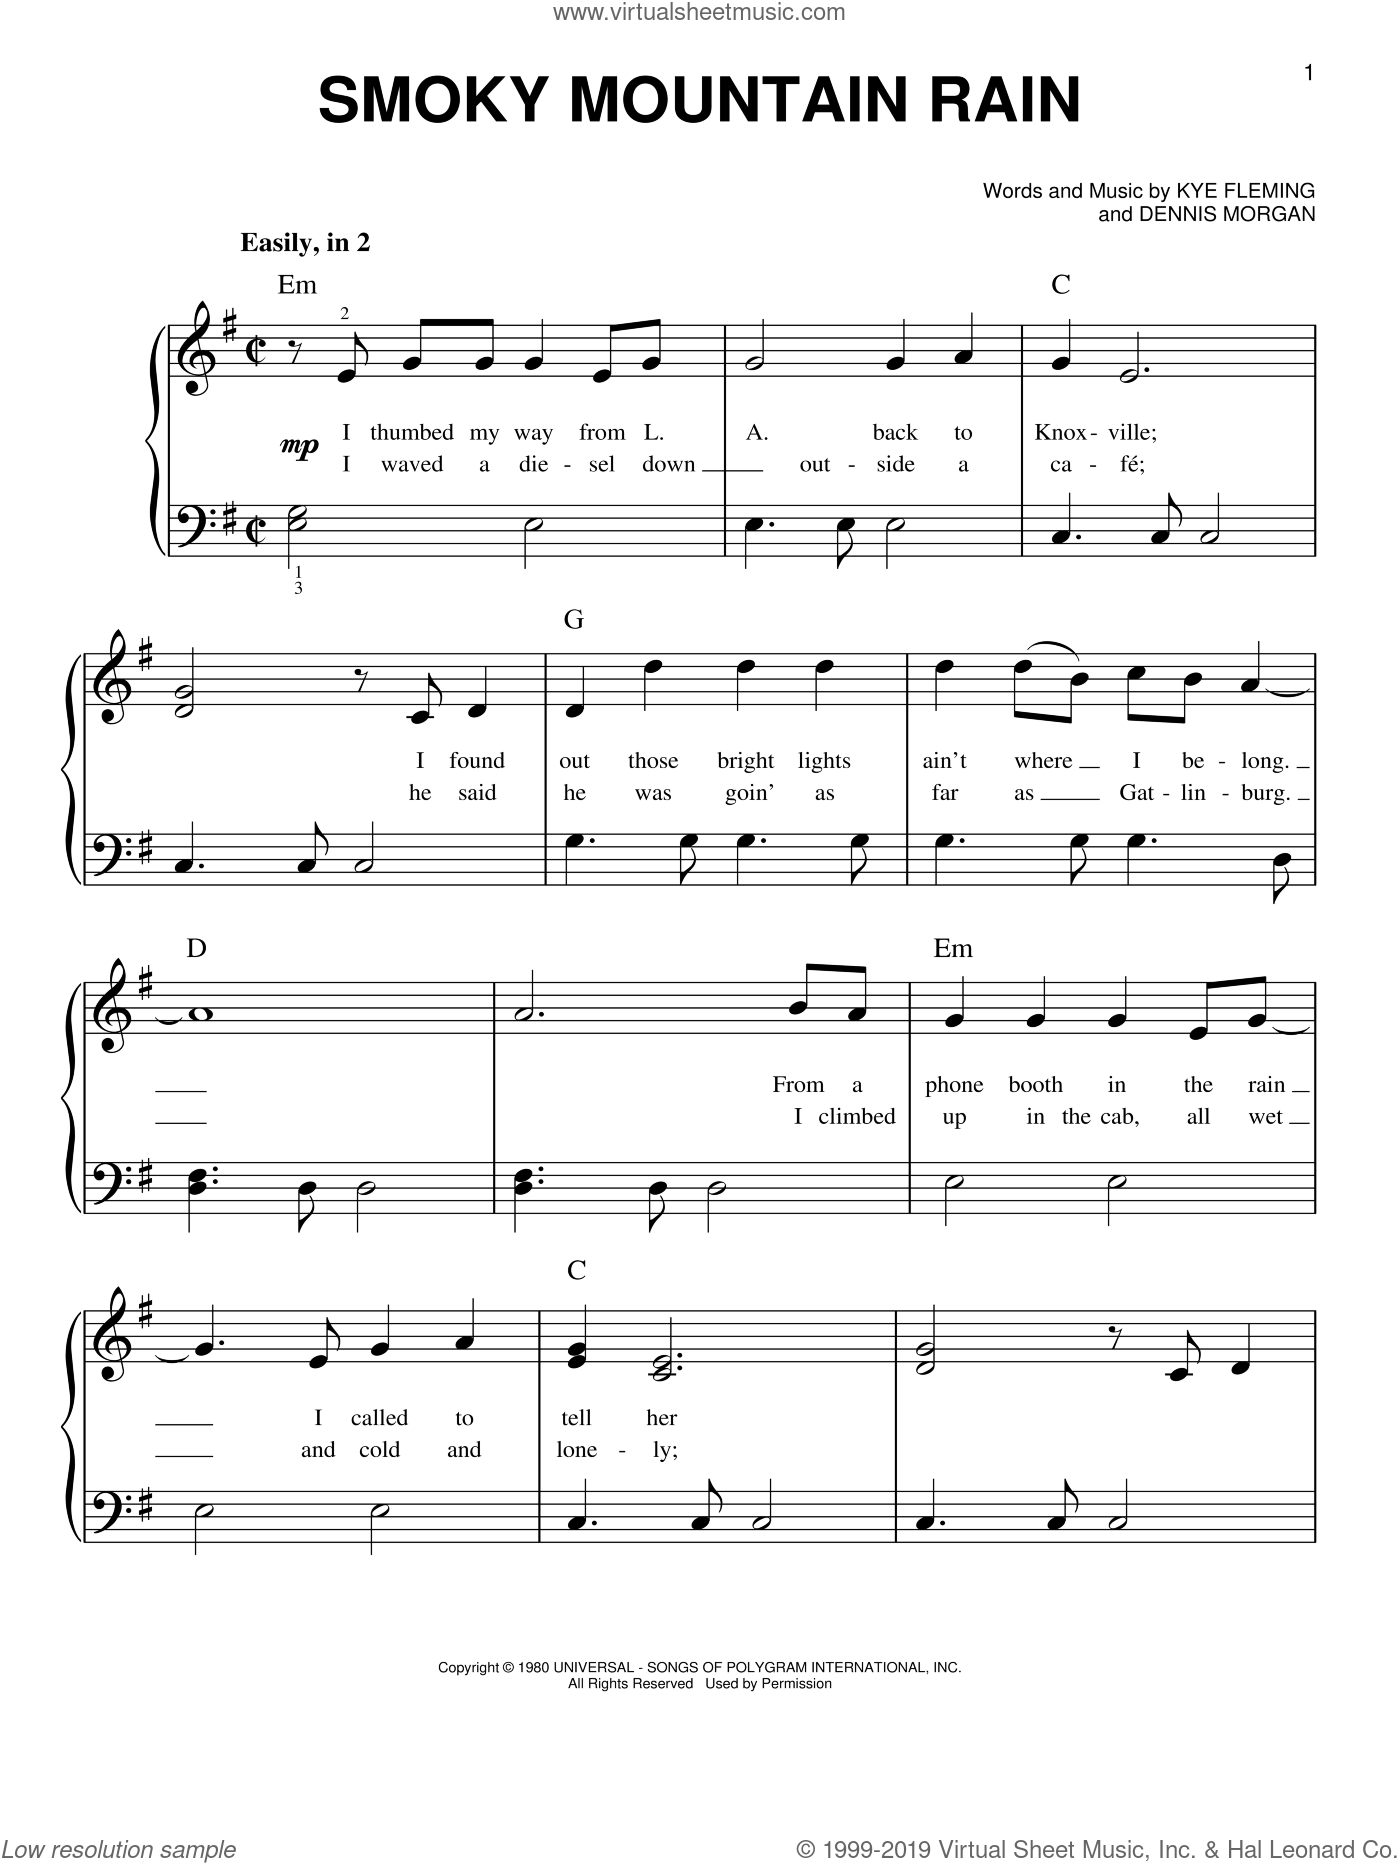 Smoky Mountain Rain sheet music for piano solo by Kye Fleming